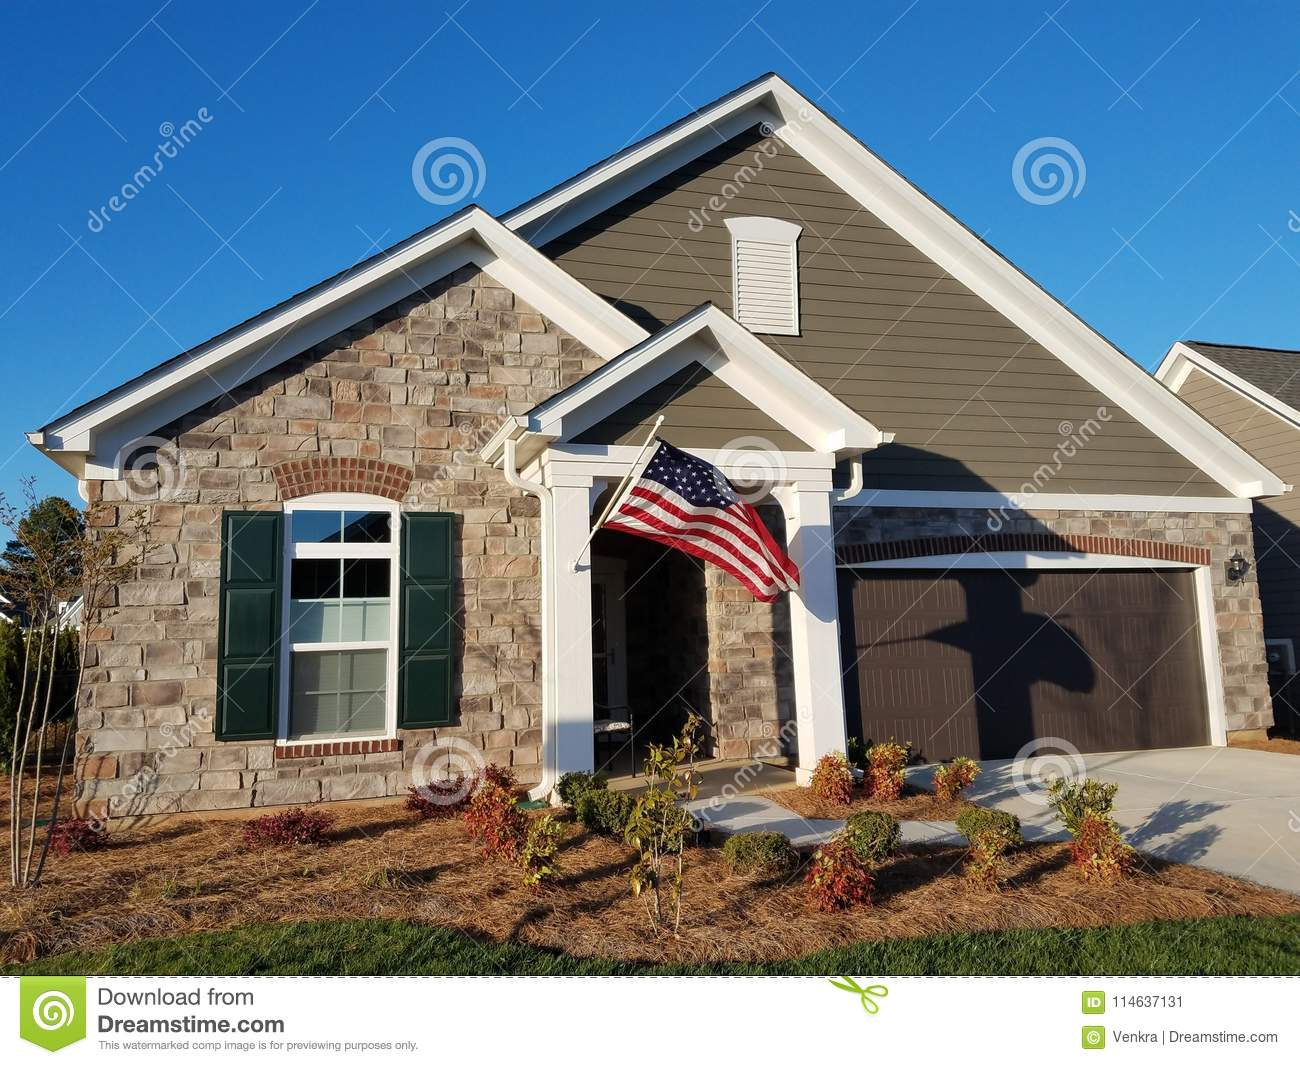 A front view of the modern house with stones and us flag